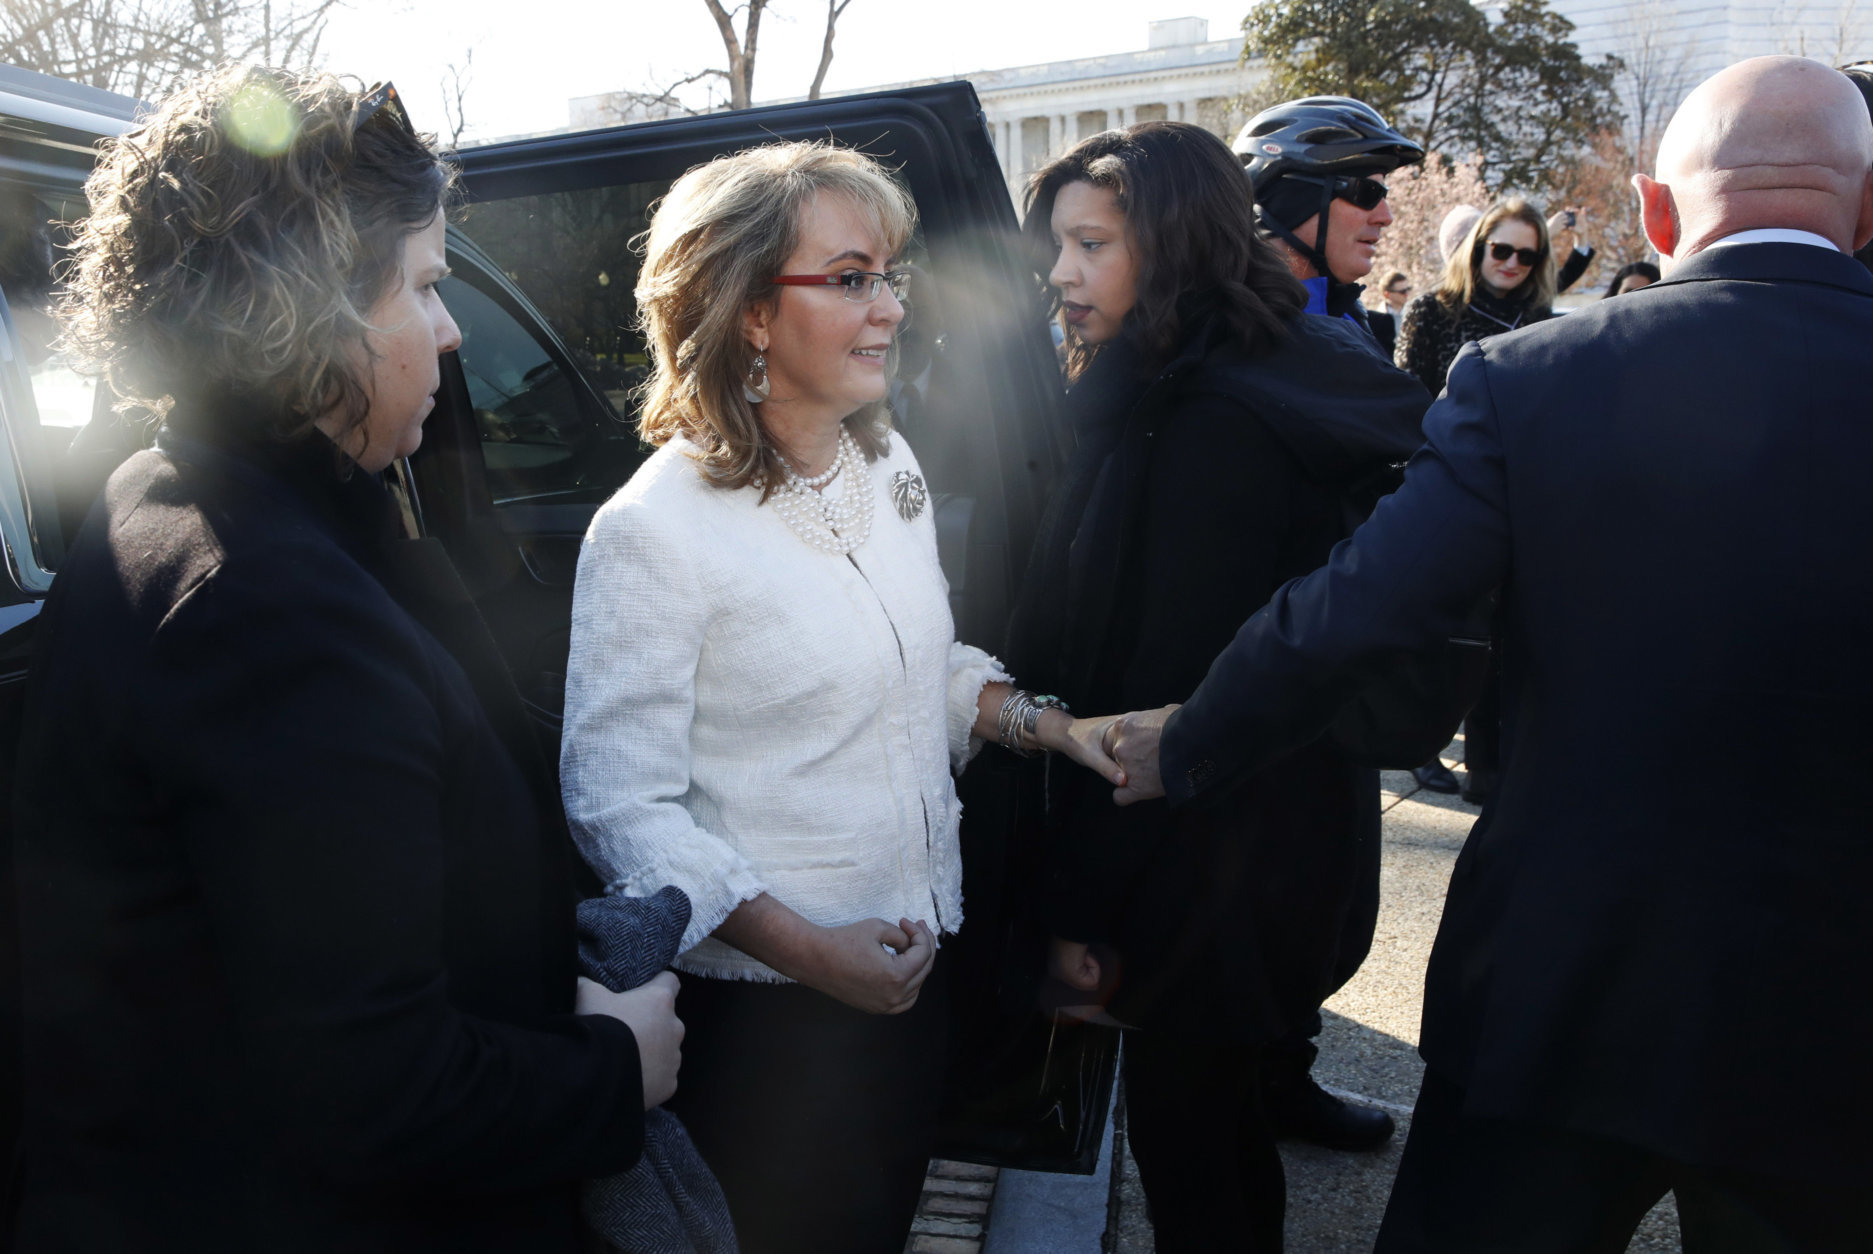 Gabby Giffords, center, is helped by her husband Mark Kelly, right, as they arrive for a news conference about gun violence, Friday,March 23, 2018, on Capitol Hill in Washington, ahead of the Saturday March For Our Lives. The conference was also attended by students and parents from Marjory Stoneman Douglas High School. (AP Photo/Jacquelyn Martin)